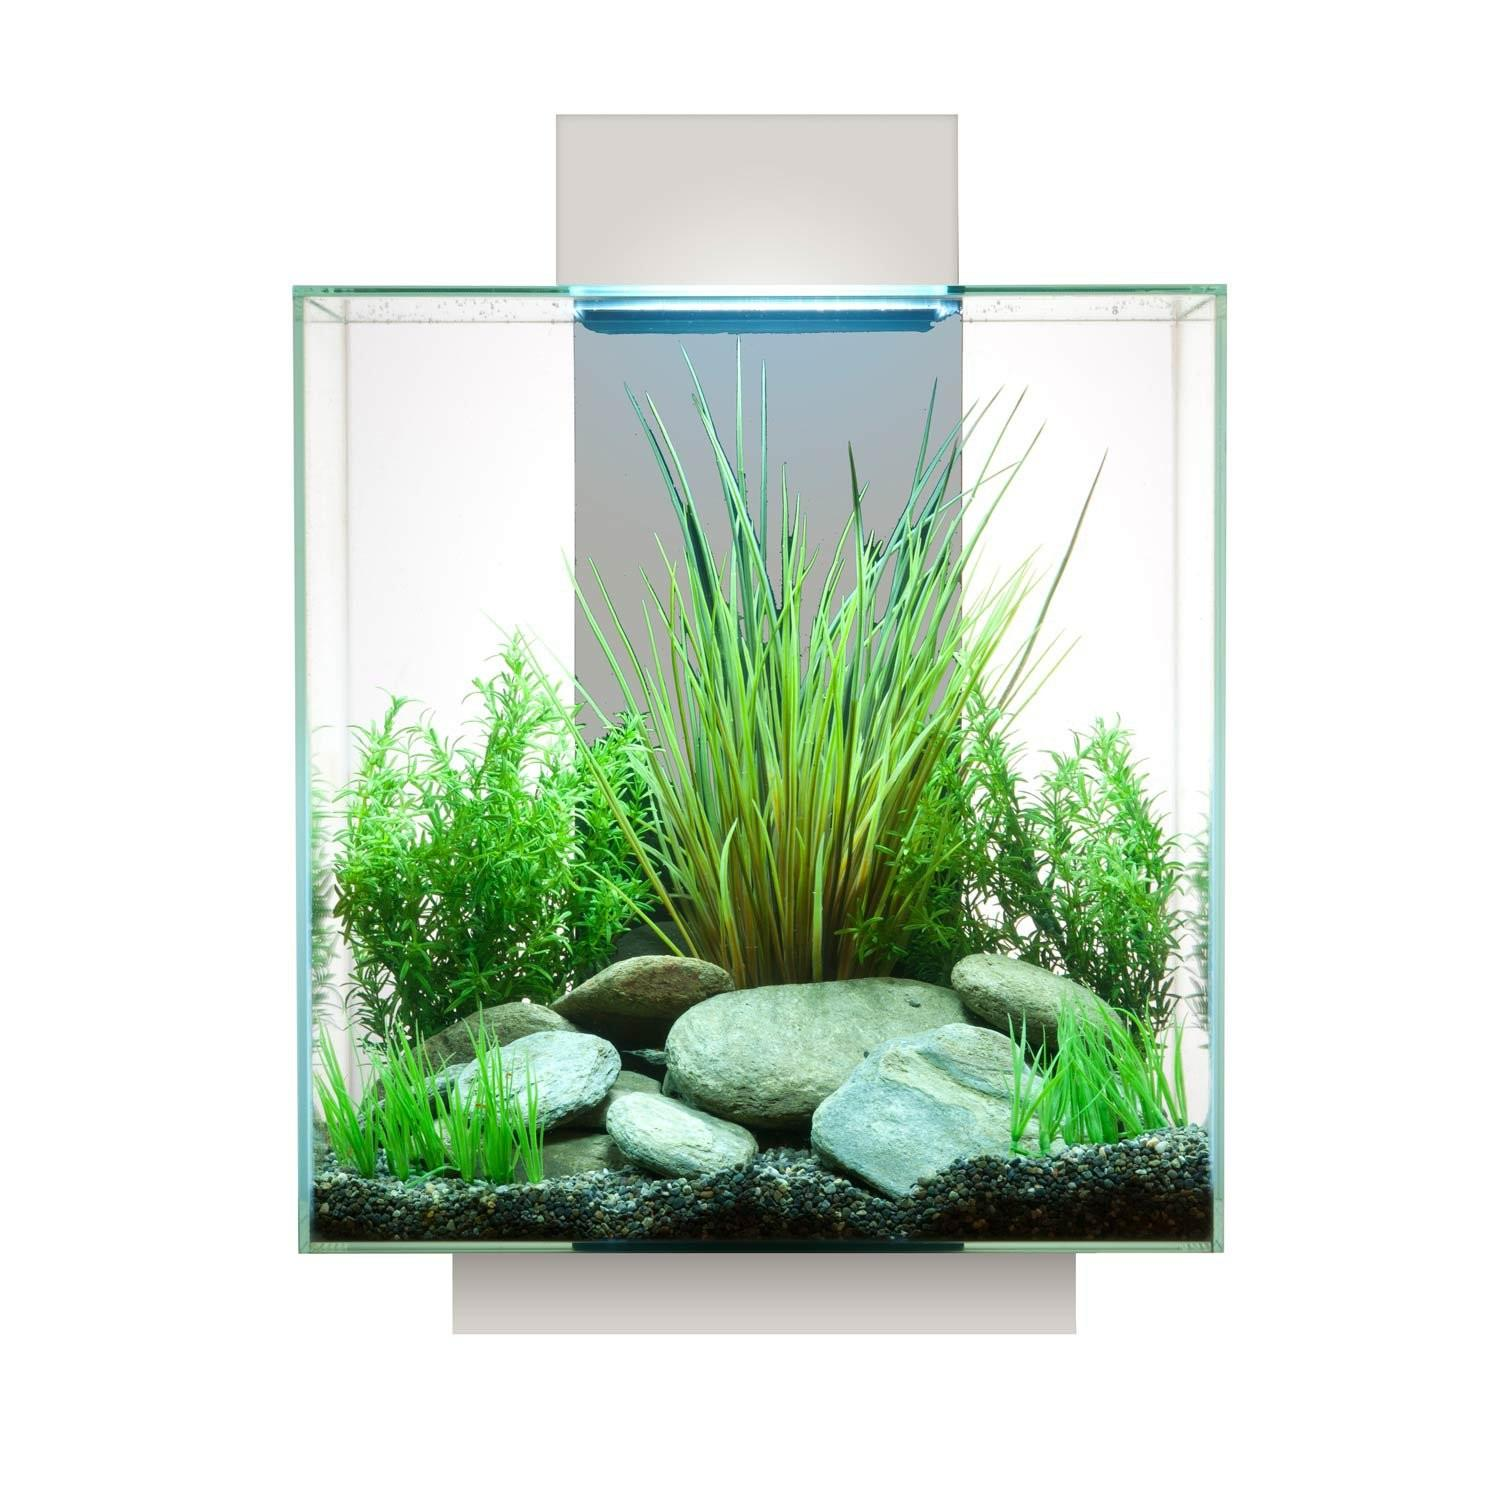 Fluval Edge Aquarium Kit White Petco